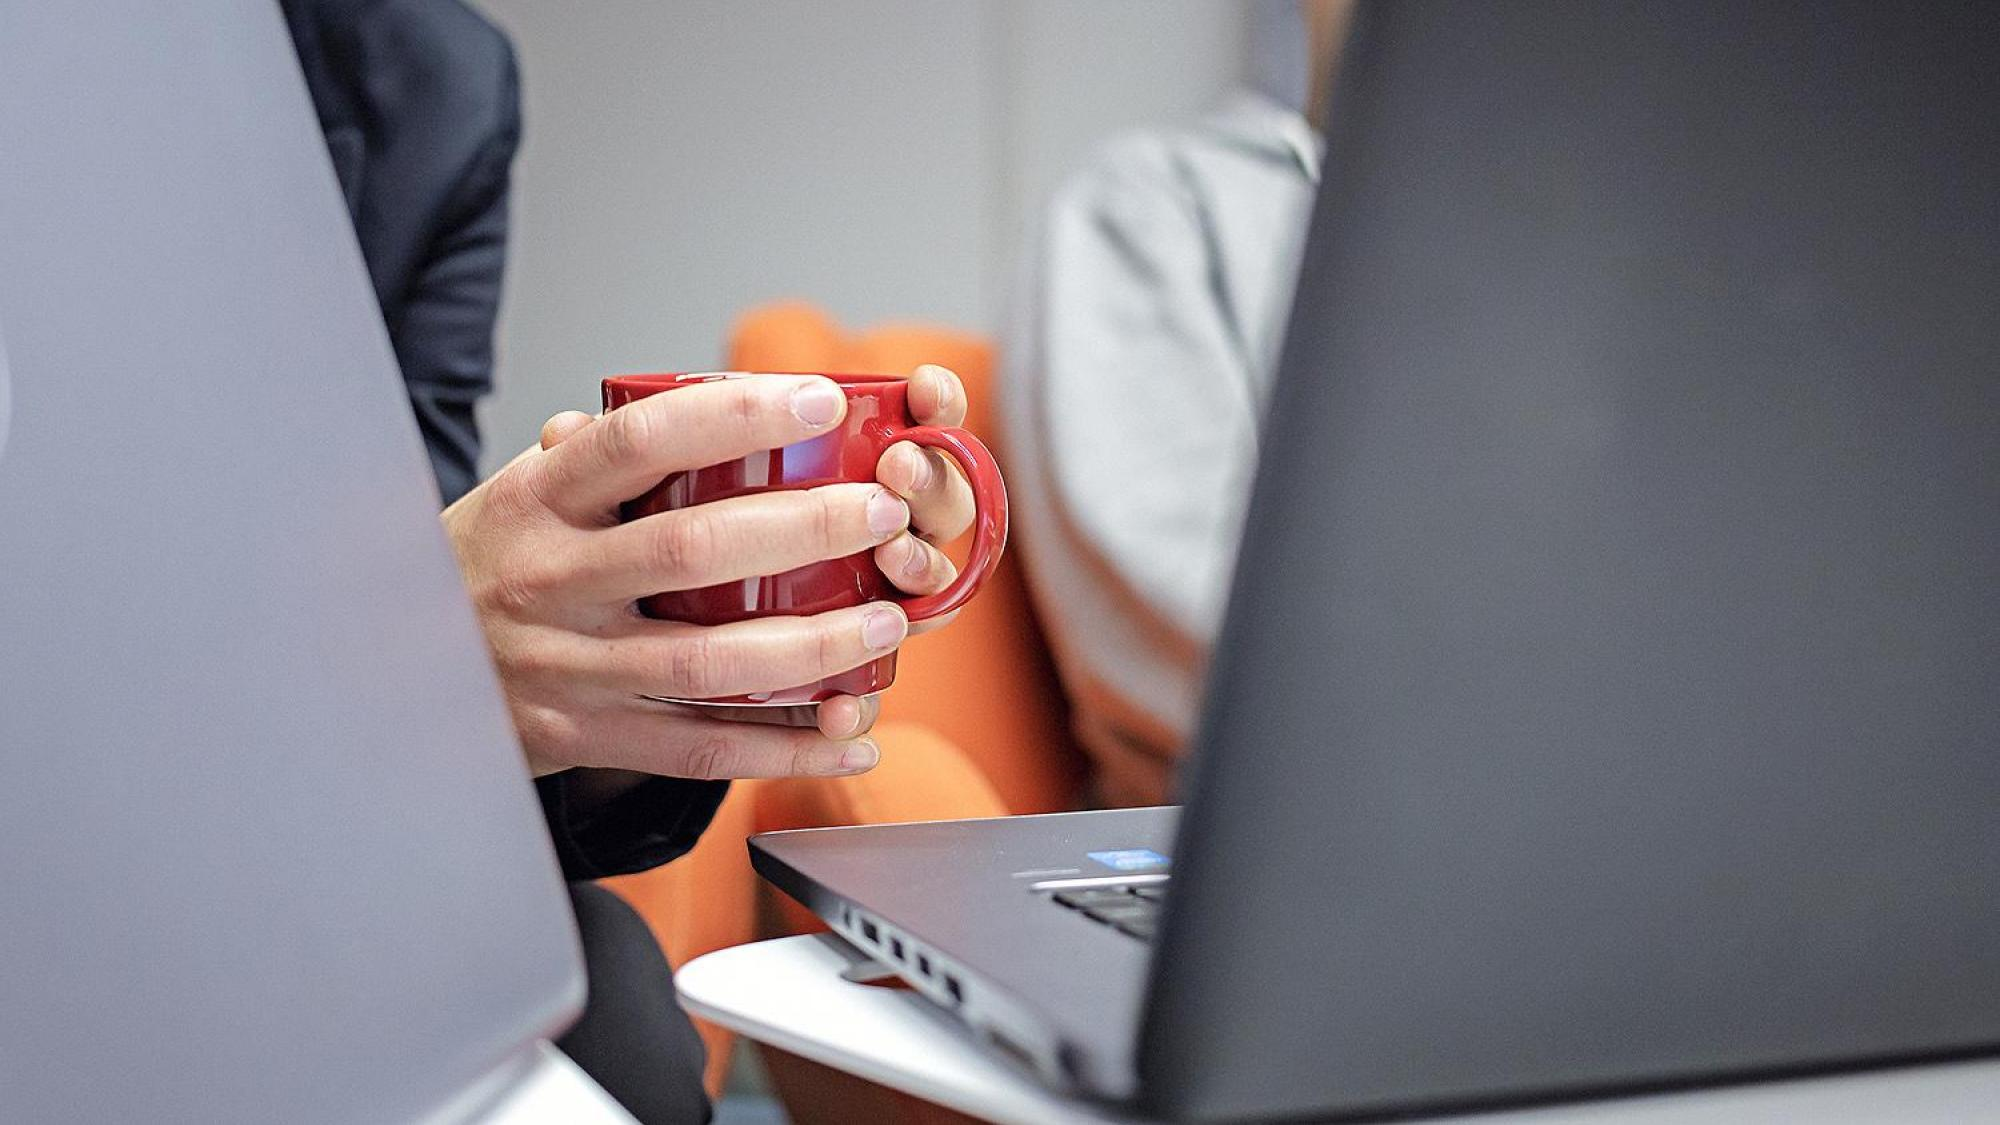 The hands holding a coffee cup appear behind a laptop